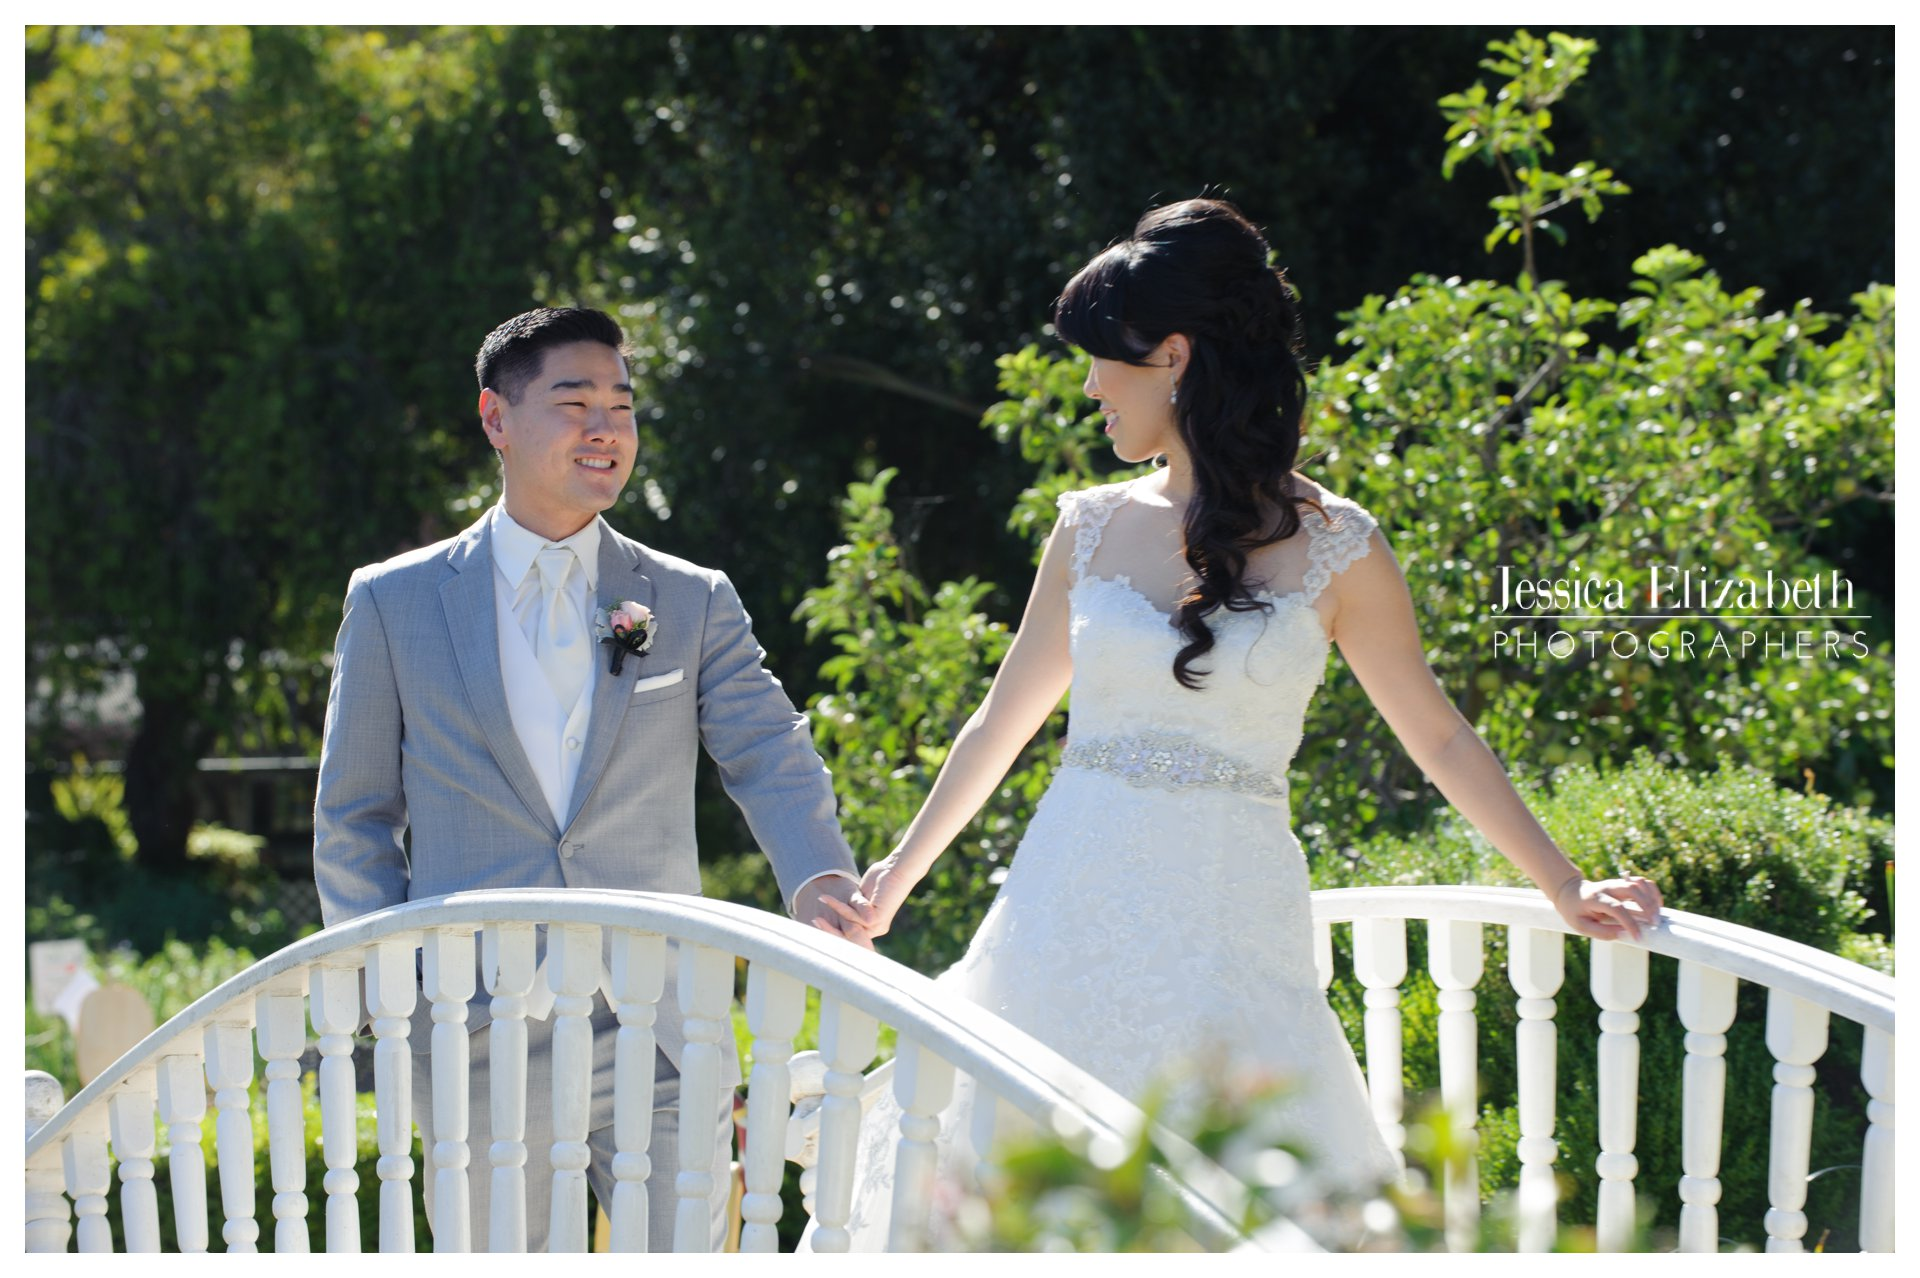 13-South Coast Botanic Garden Palos Verdes Wedding Photography by Jessica Elizabeth